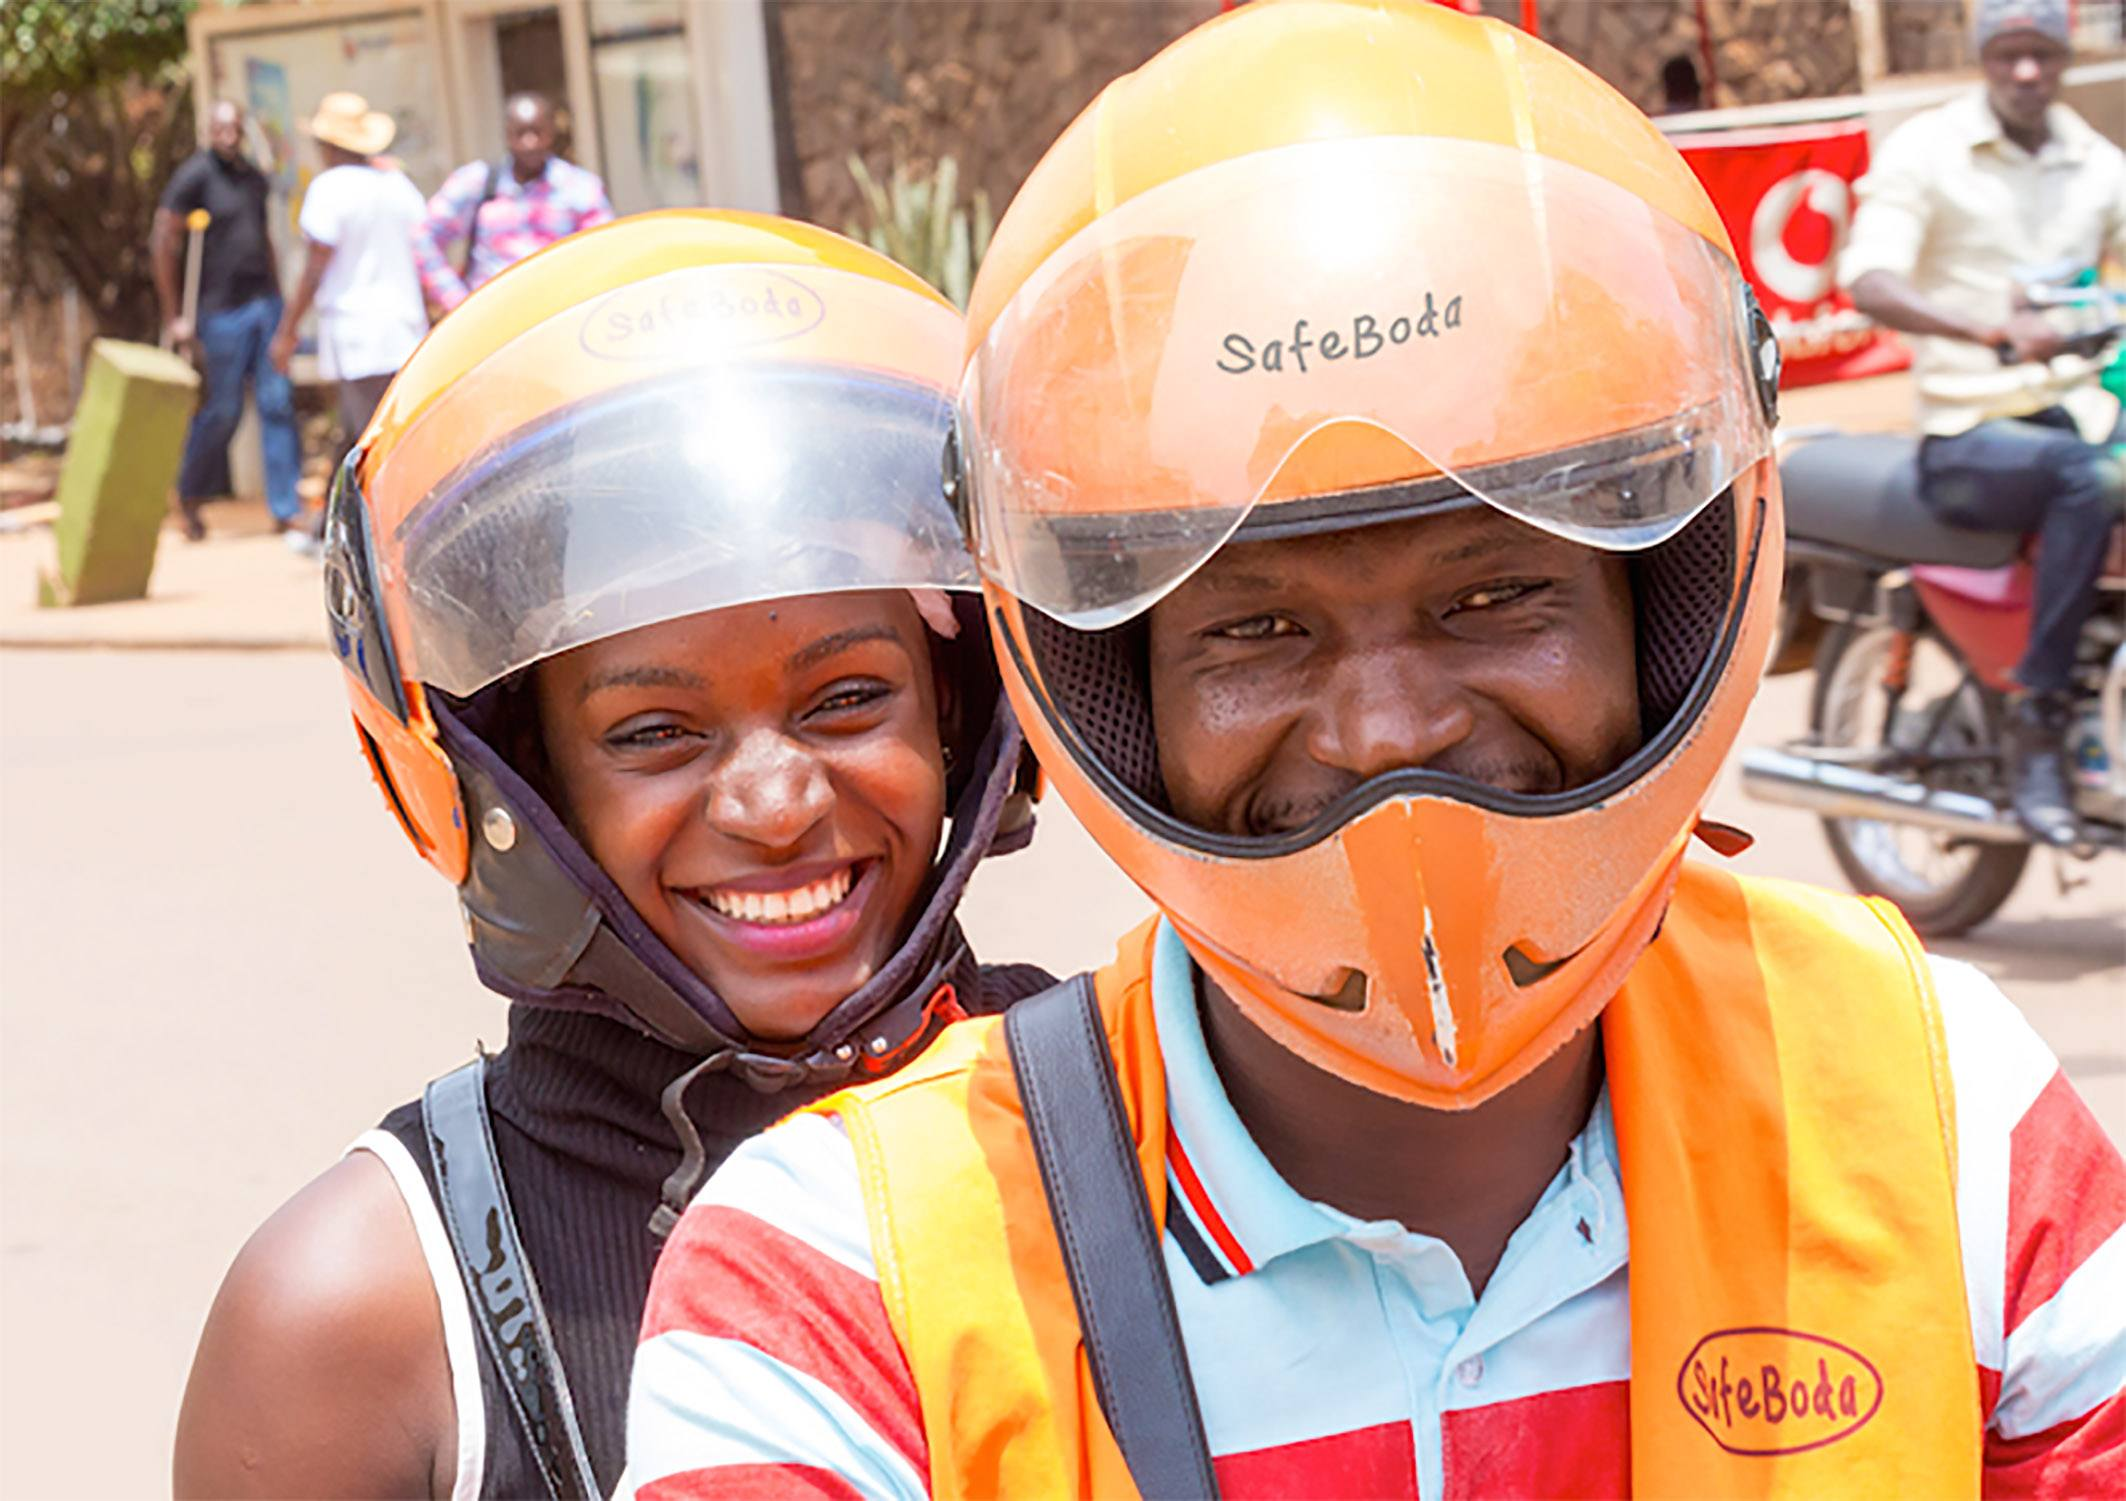 SafeBoda motorcycle rider with lady passenger on back